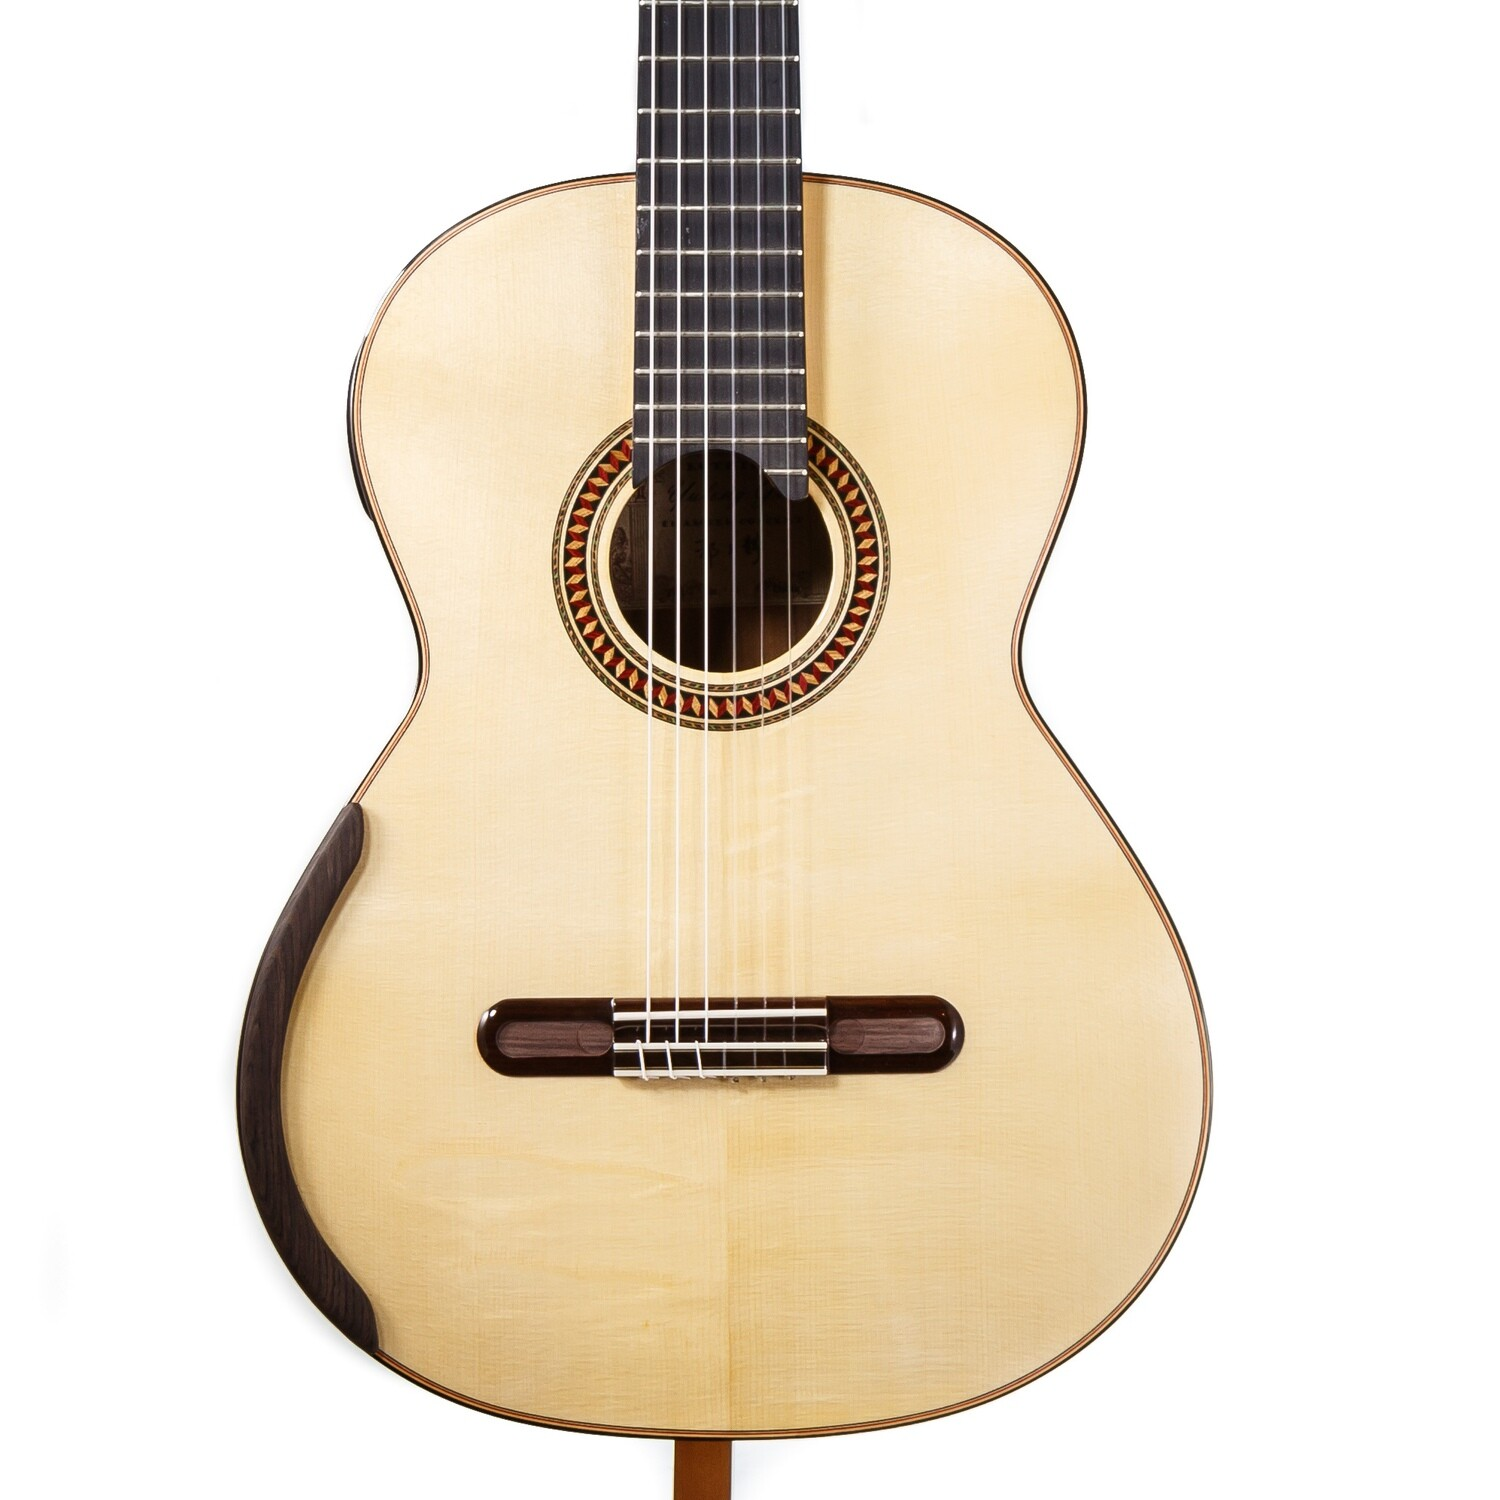 Chamber Concert by Yulong Guo - Spruce Double Top, Pau Ferro Back/Sides - 640mm Scale Length - Serial # 19-006